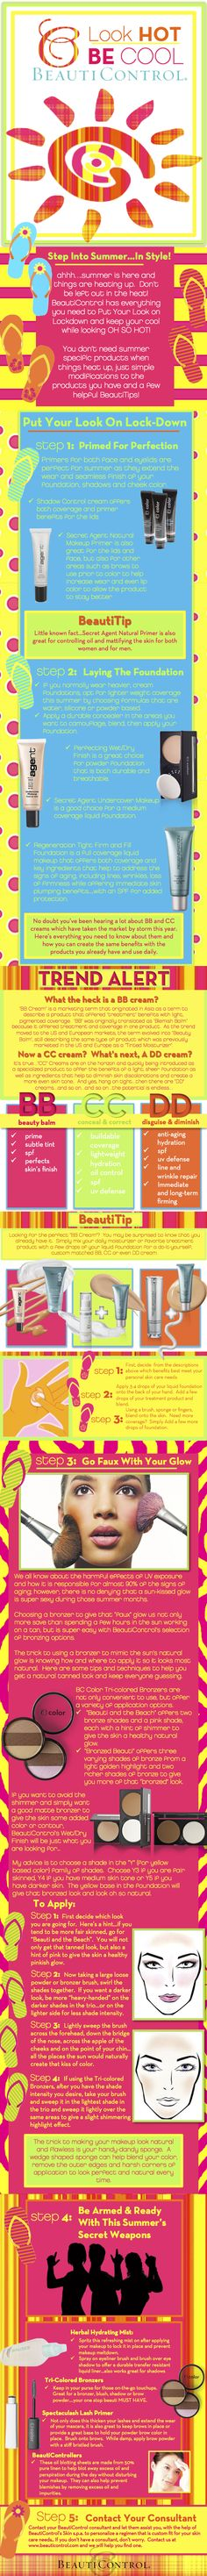 BeautiControl has everything you need to look HOT, and be COOL this Summer!